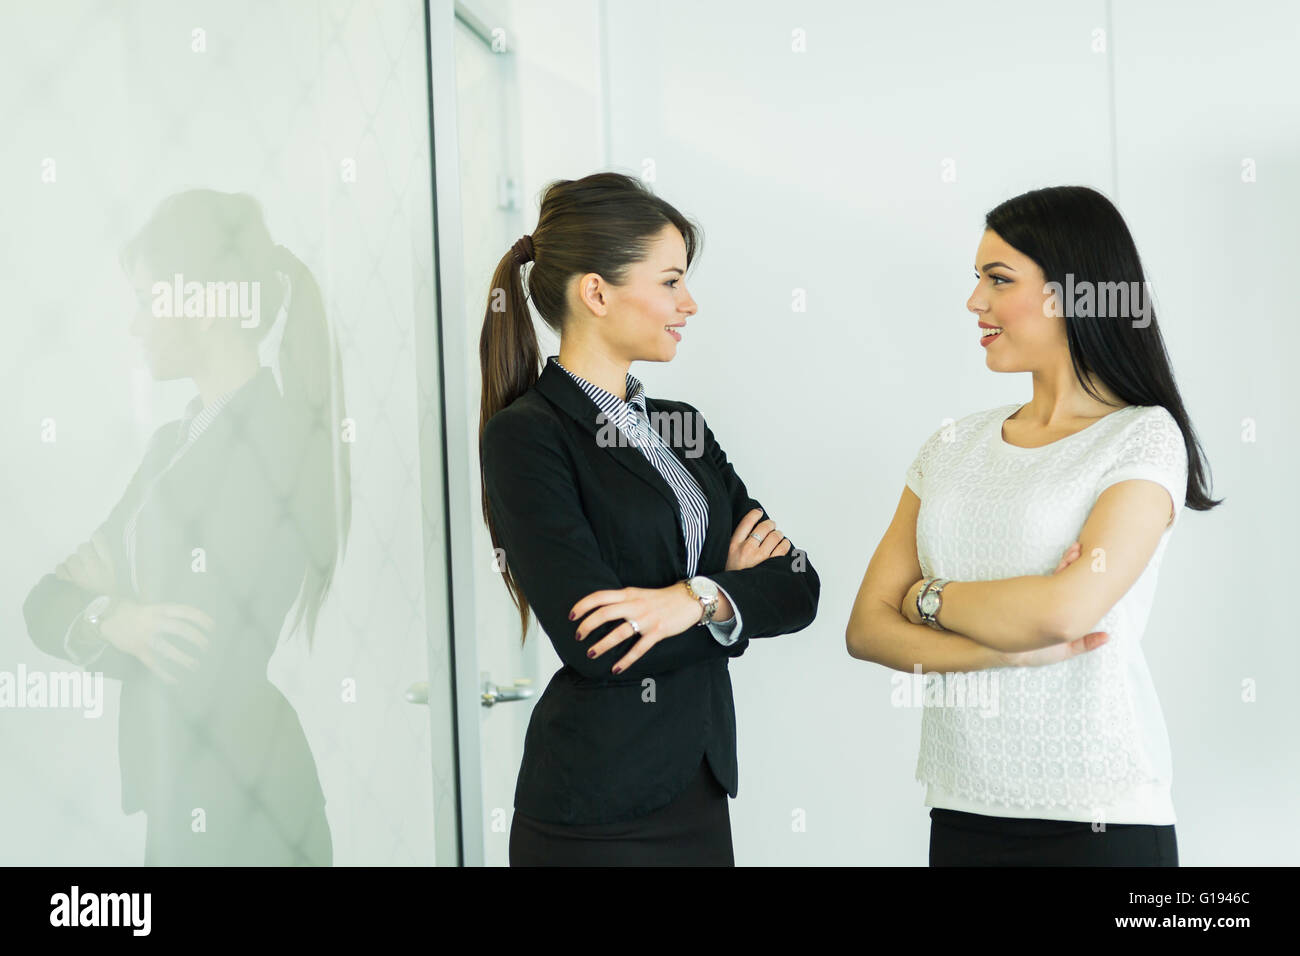 Two businesswomen talking in an office with reflection on the glass behind them - Stock Image